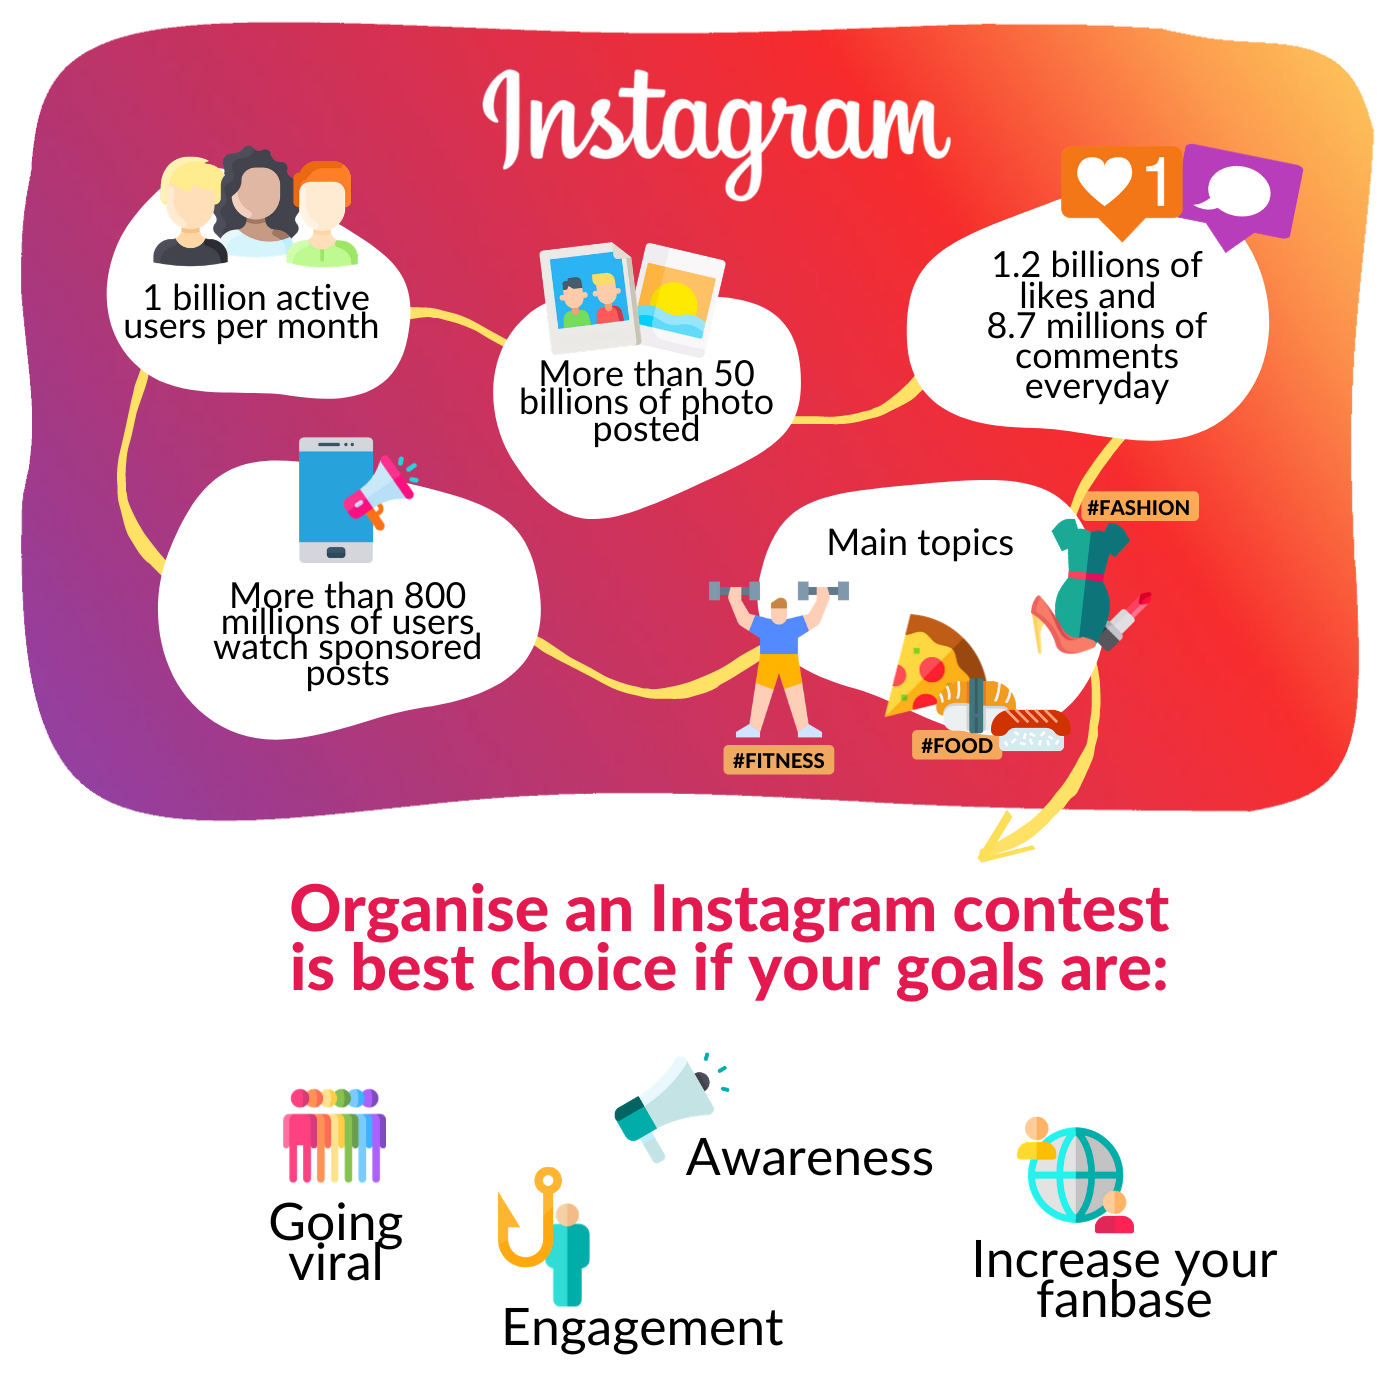 Organising a contest on Instagram offers interesting opportunities